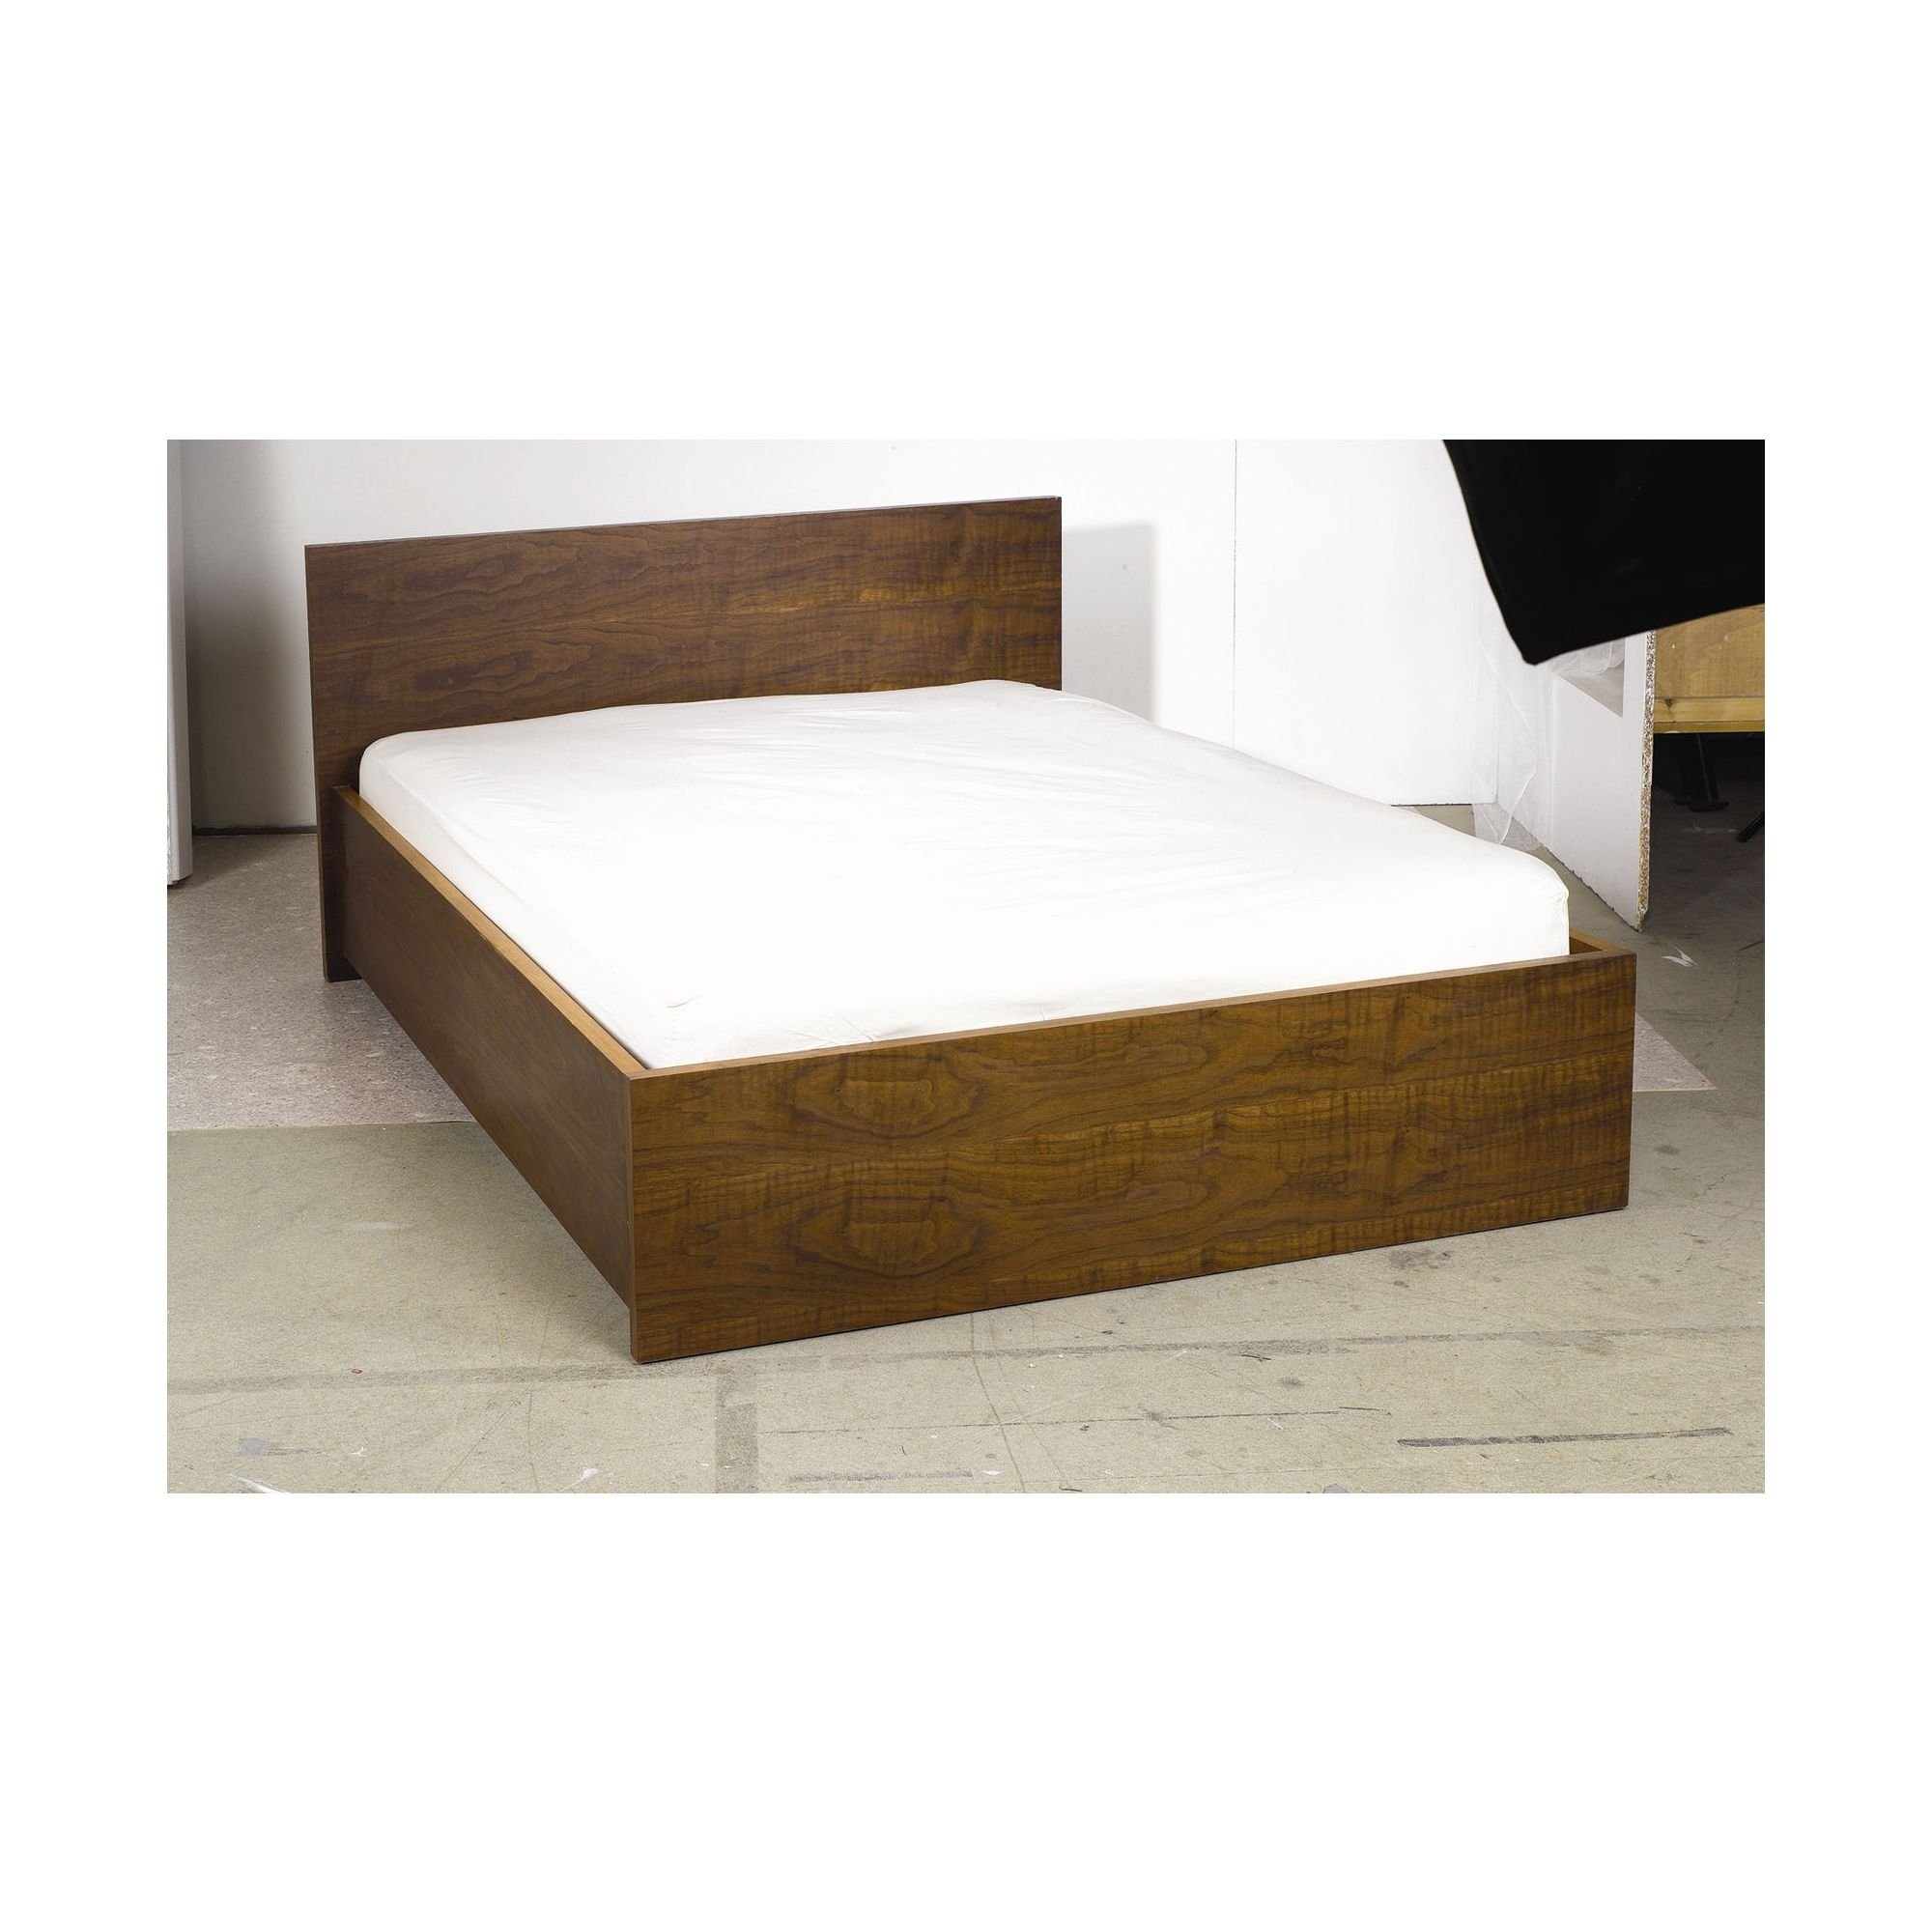 Home Zone Halvern Bed Frame - Double at Tesco Direct